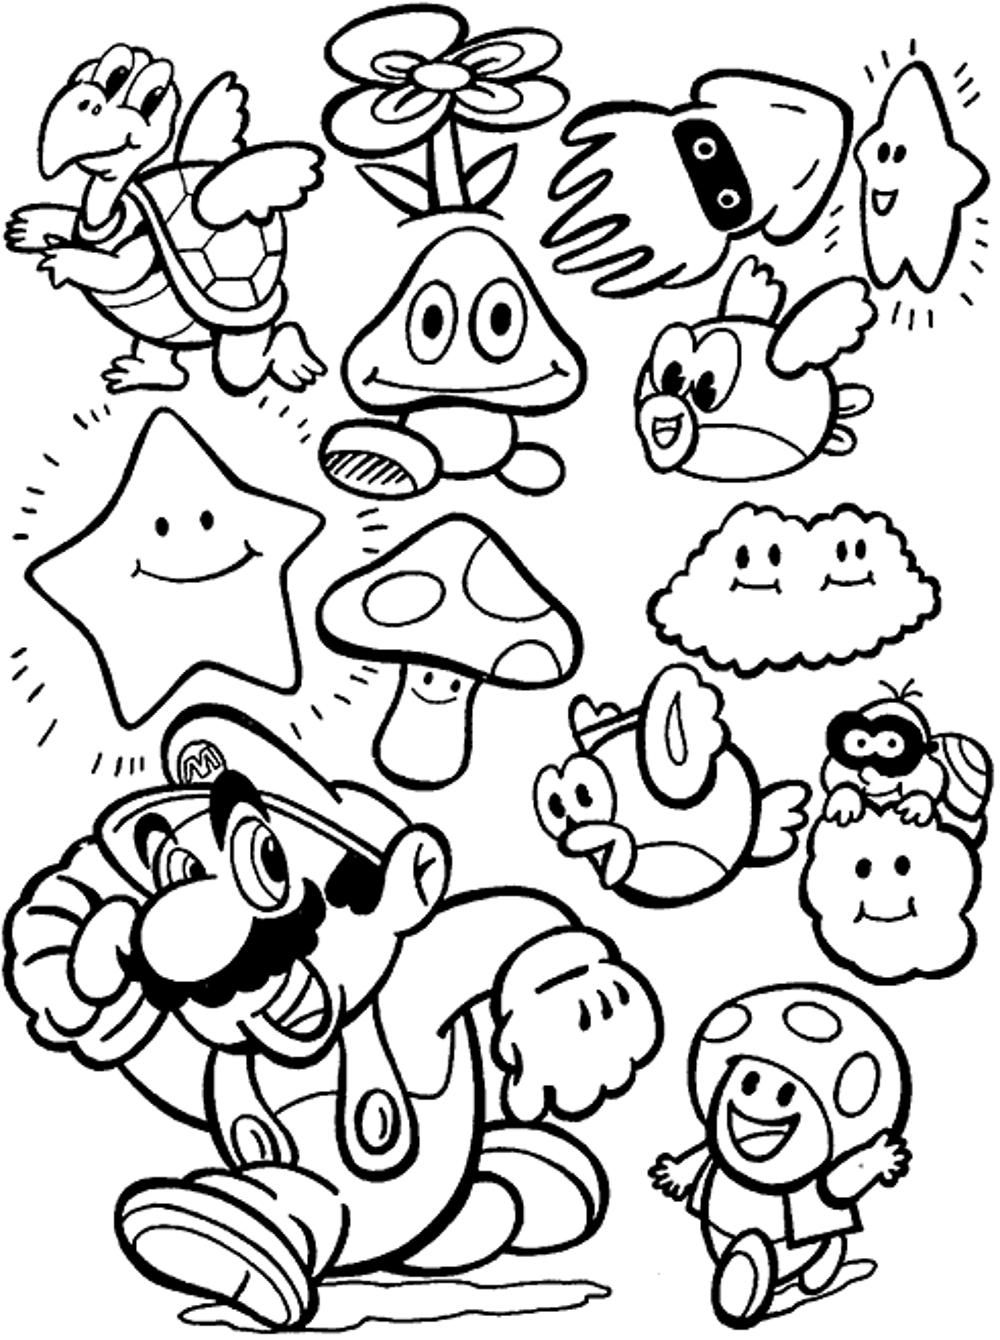 Baby Mario Coloring Pages Printable Kids Colouring Pages